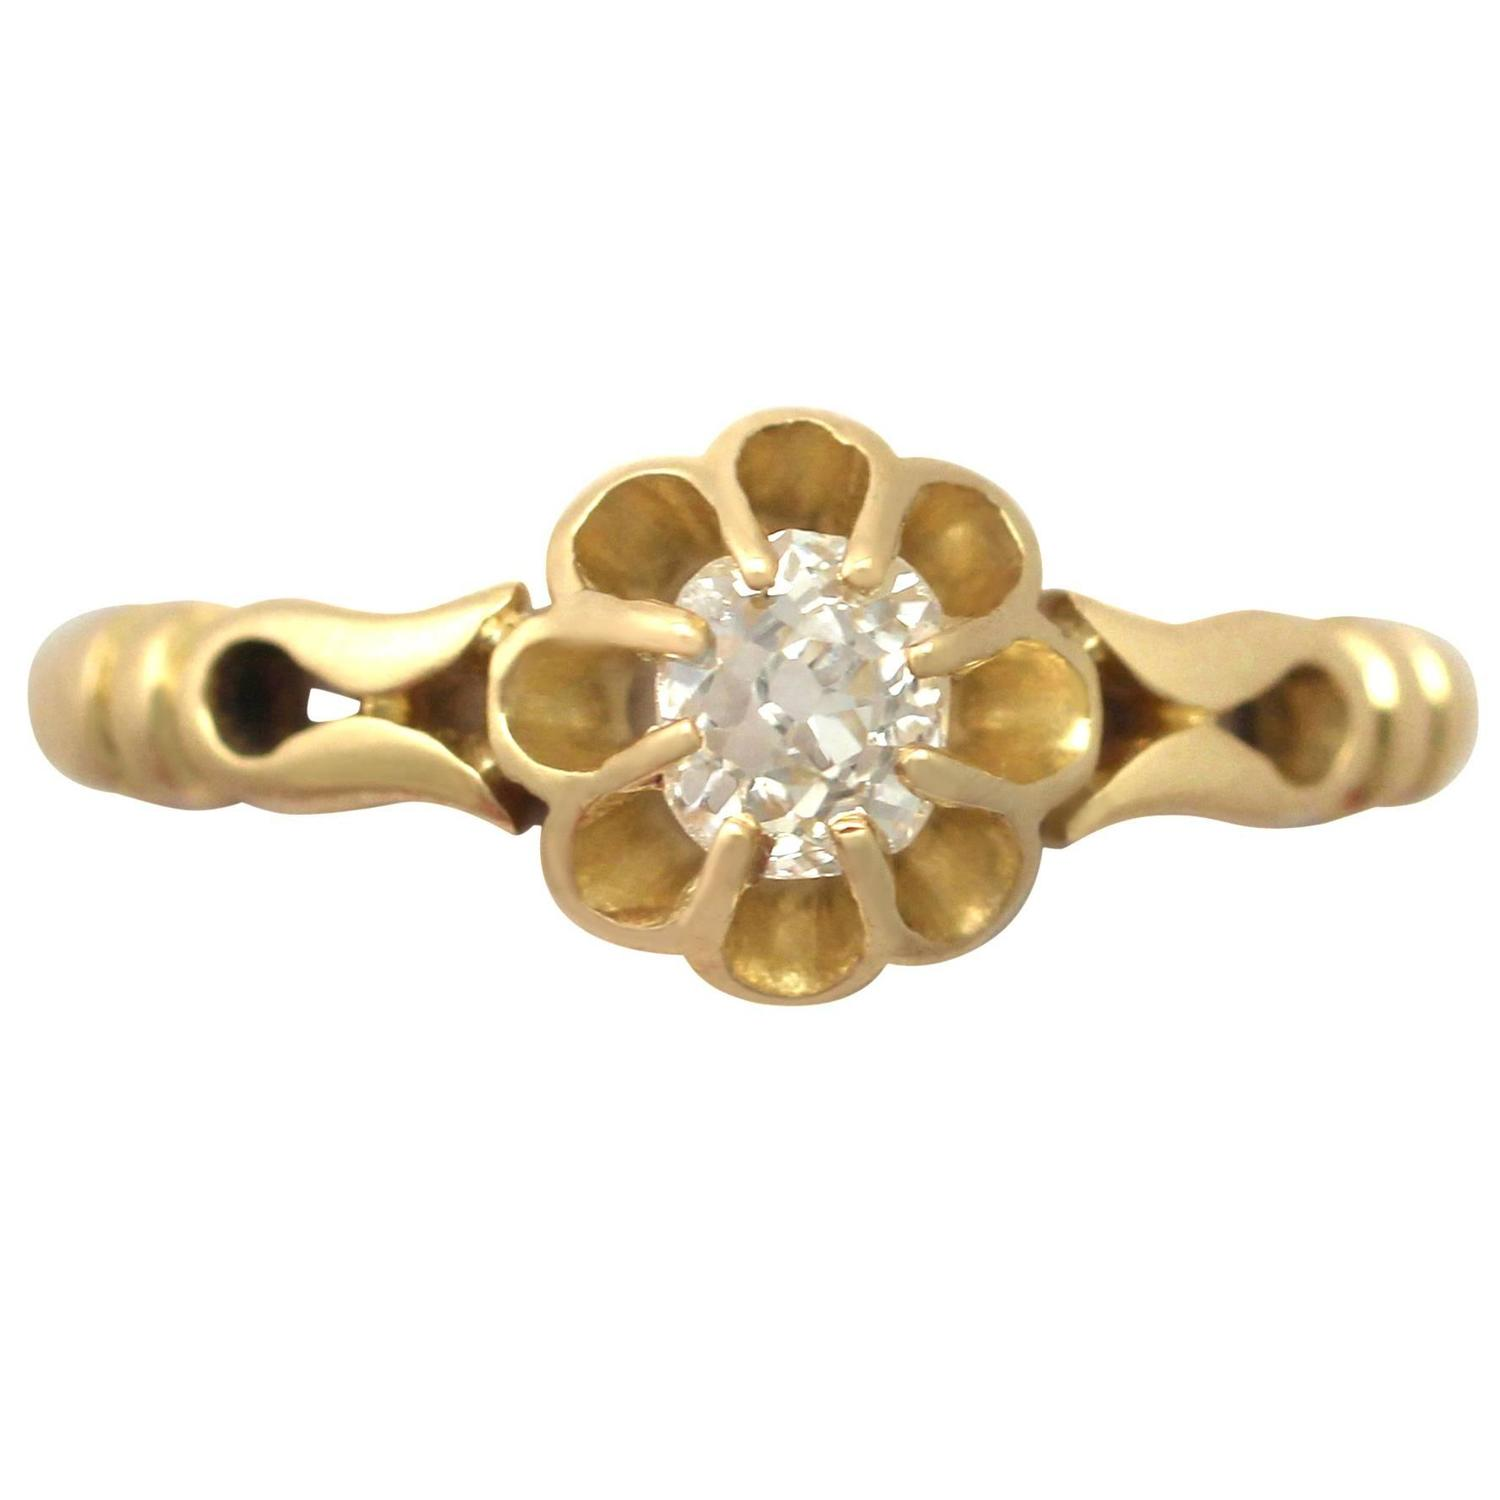 0 33Ct Diamond and 18k Yellow Gold Solitaire Ring Antique 1912